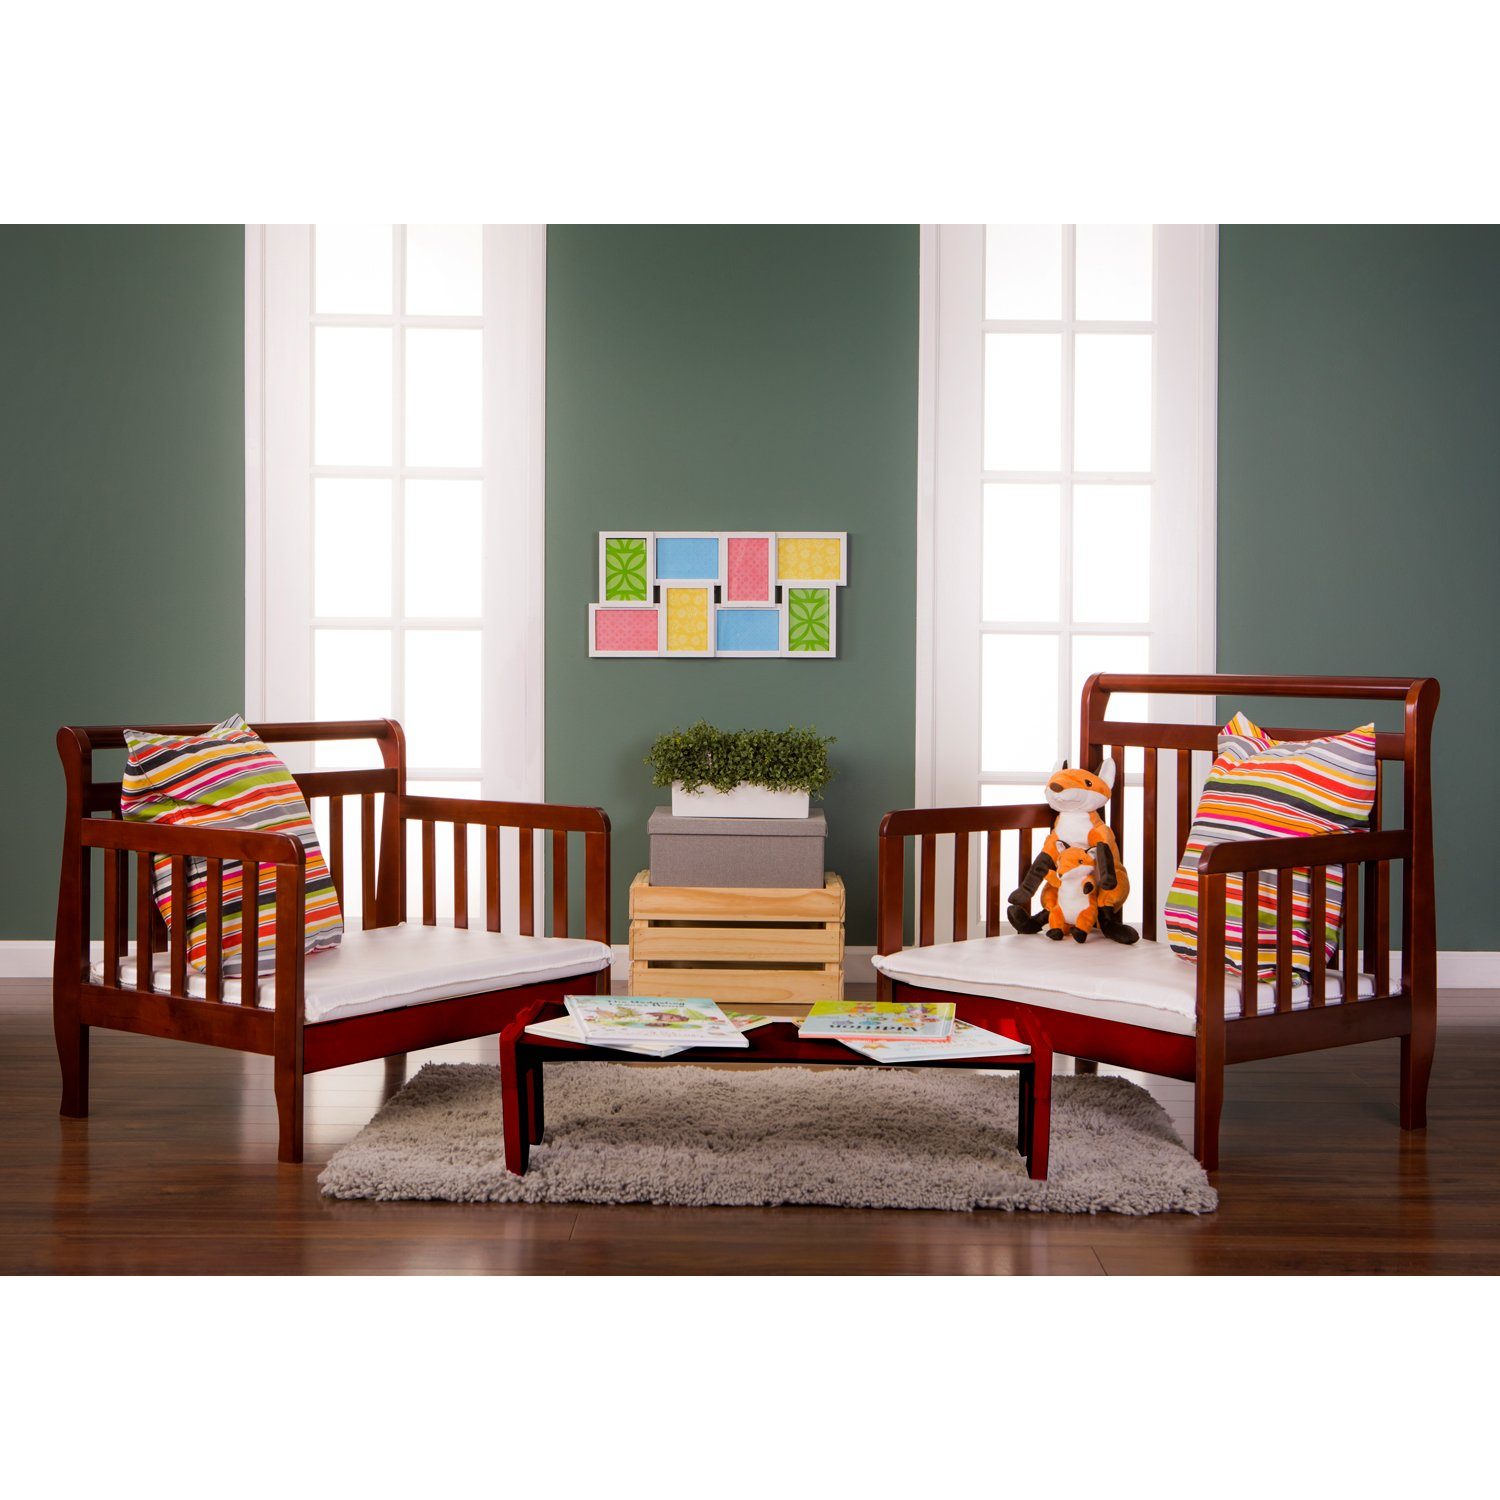 Dream On Me Emma 3 in 1 Convertible Toddler Bed, Espresso by Dream On Me (Image #4)